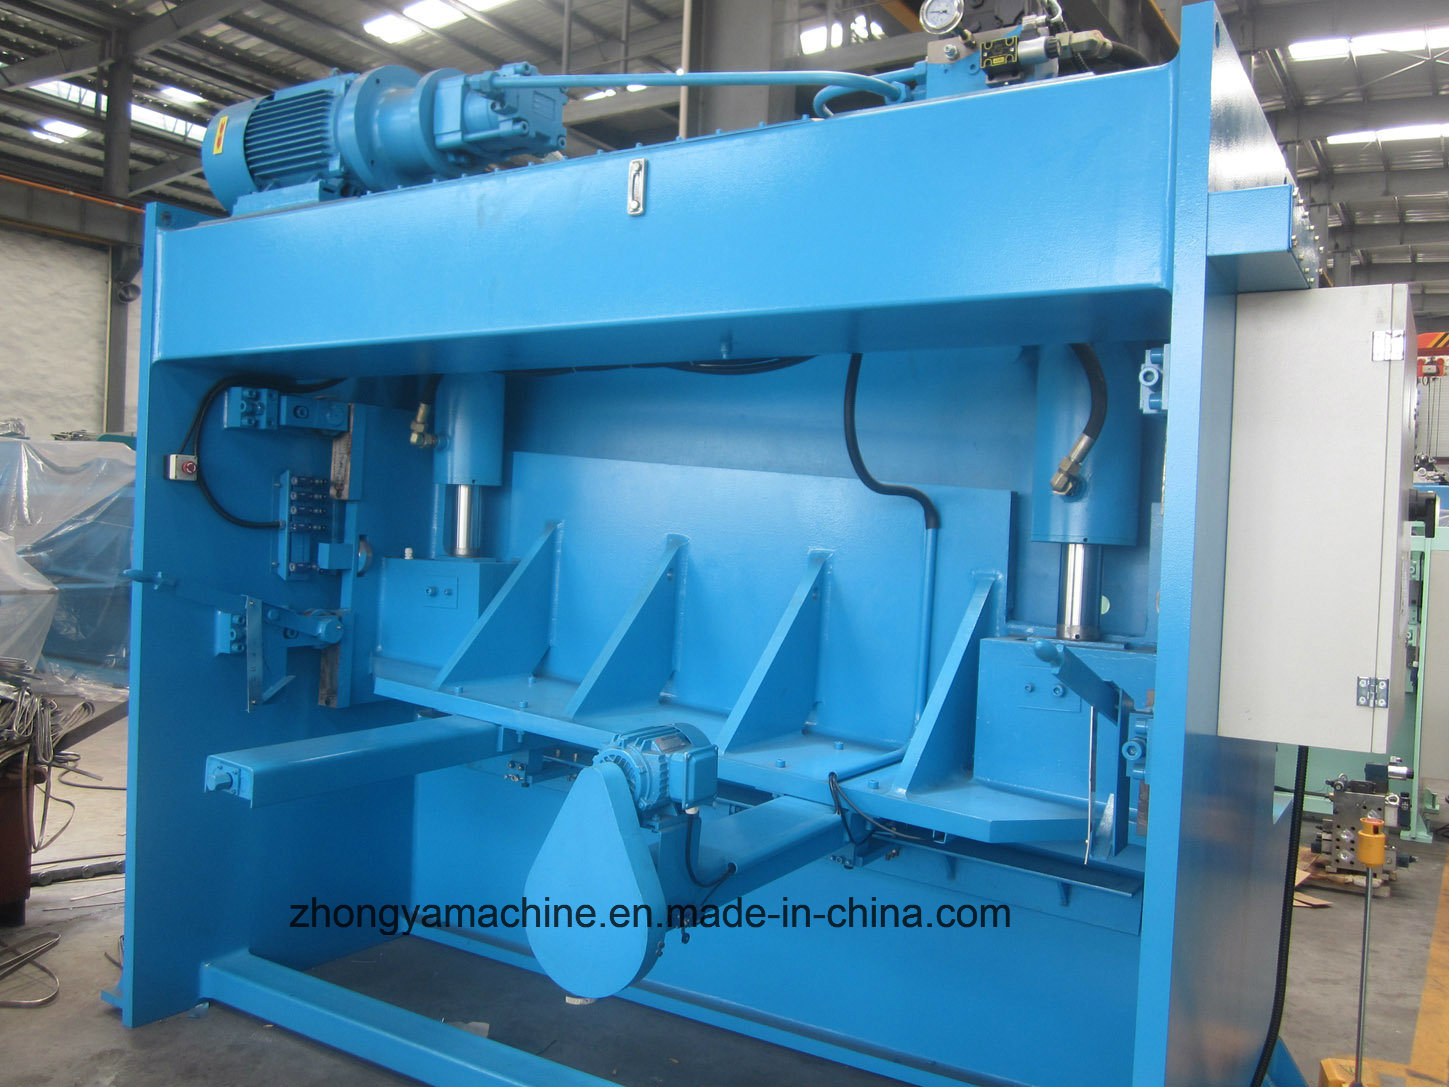 China High Quality Hydraulic Shearing Machine QC11y-8/4000